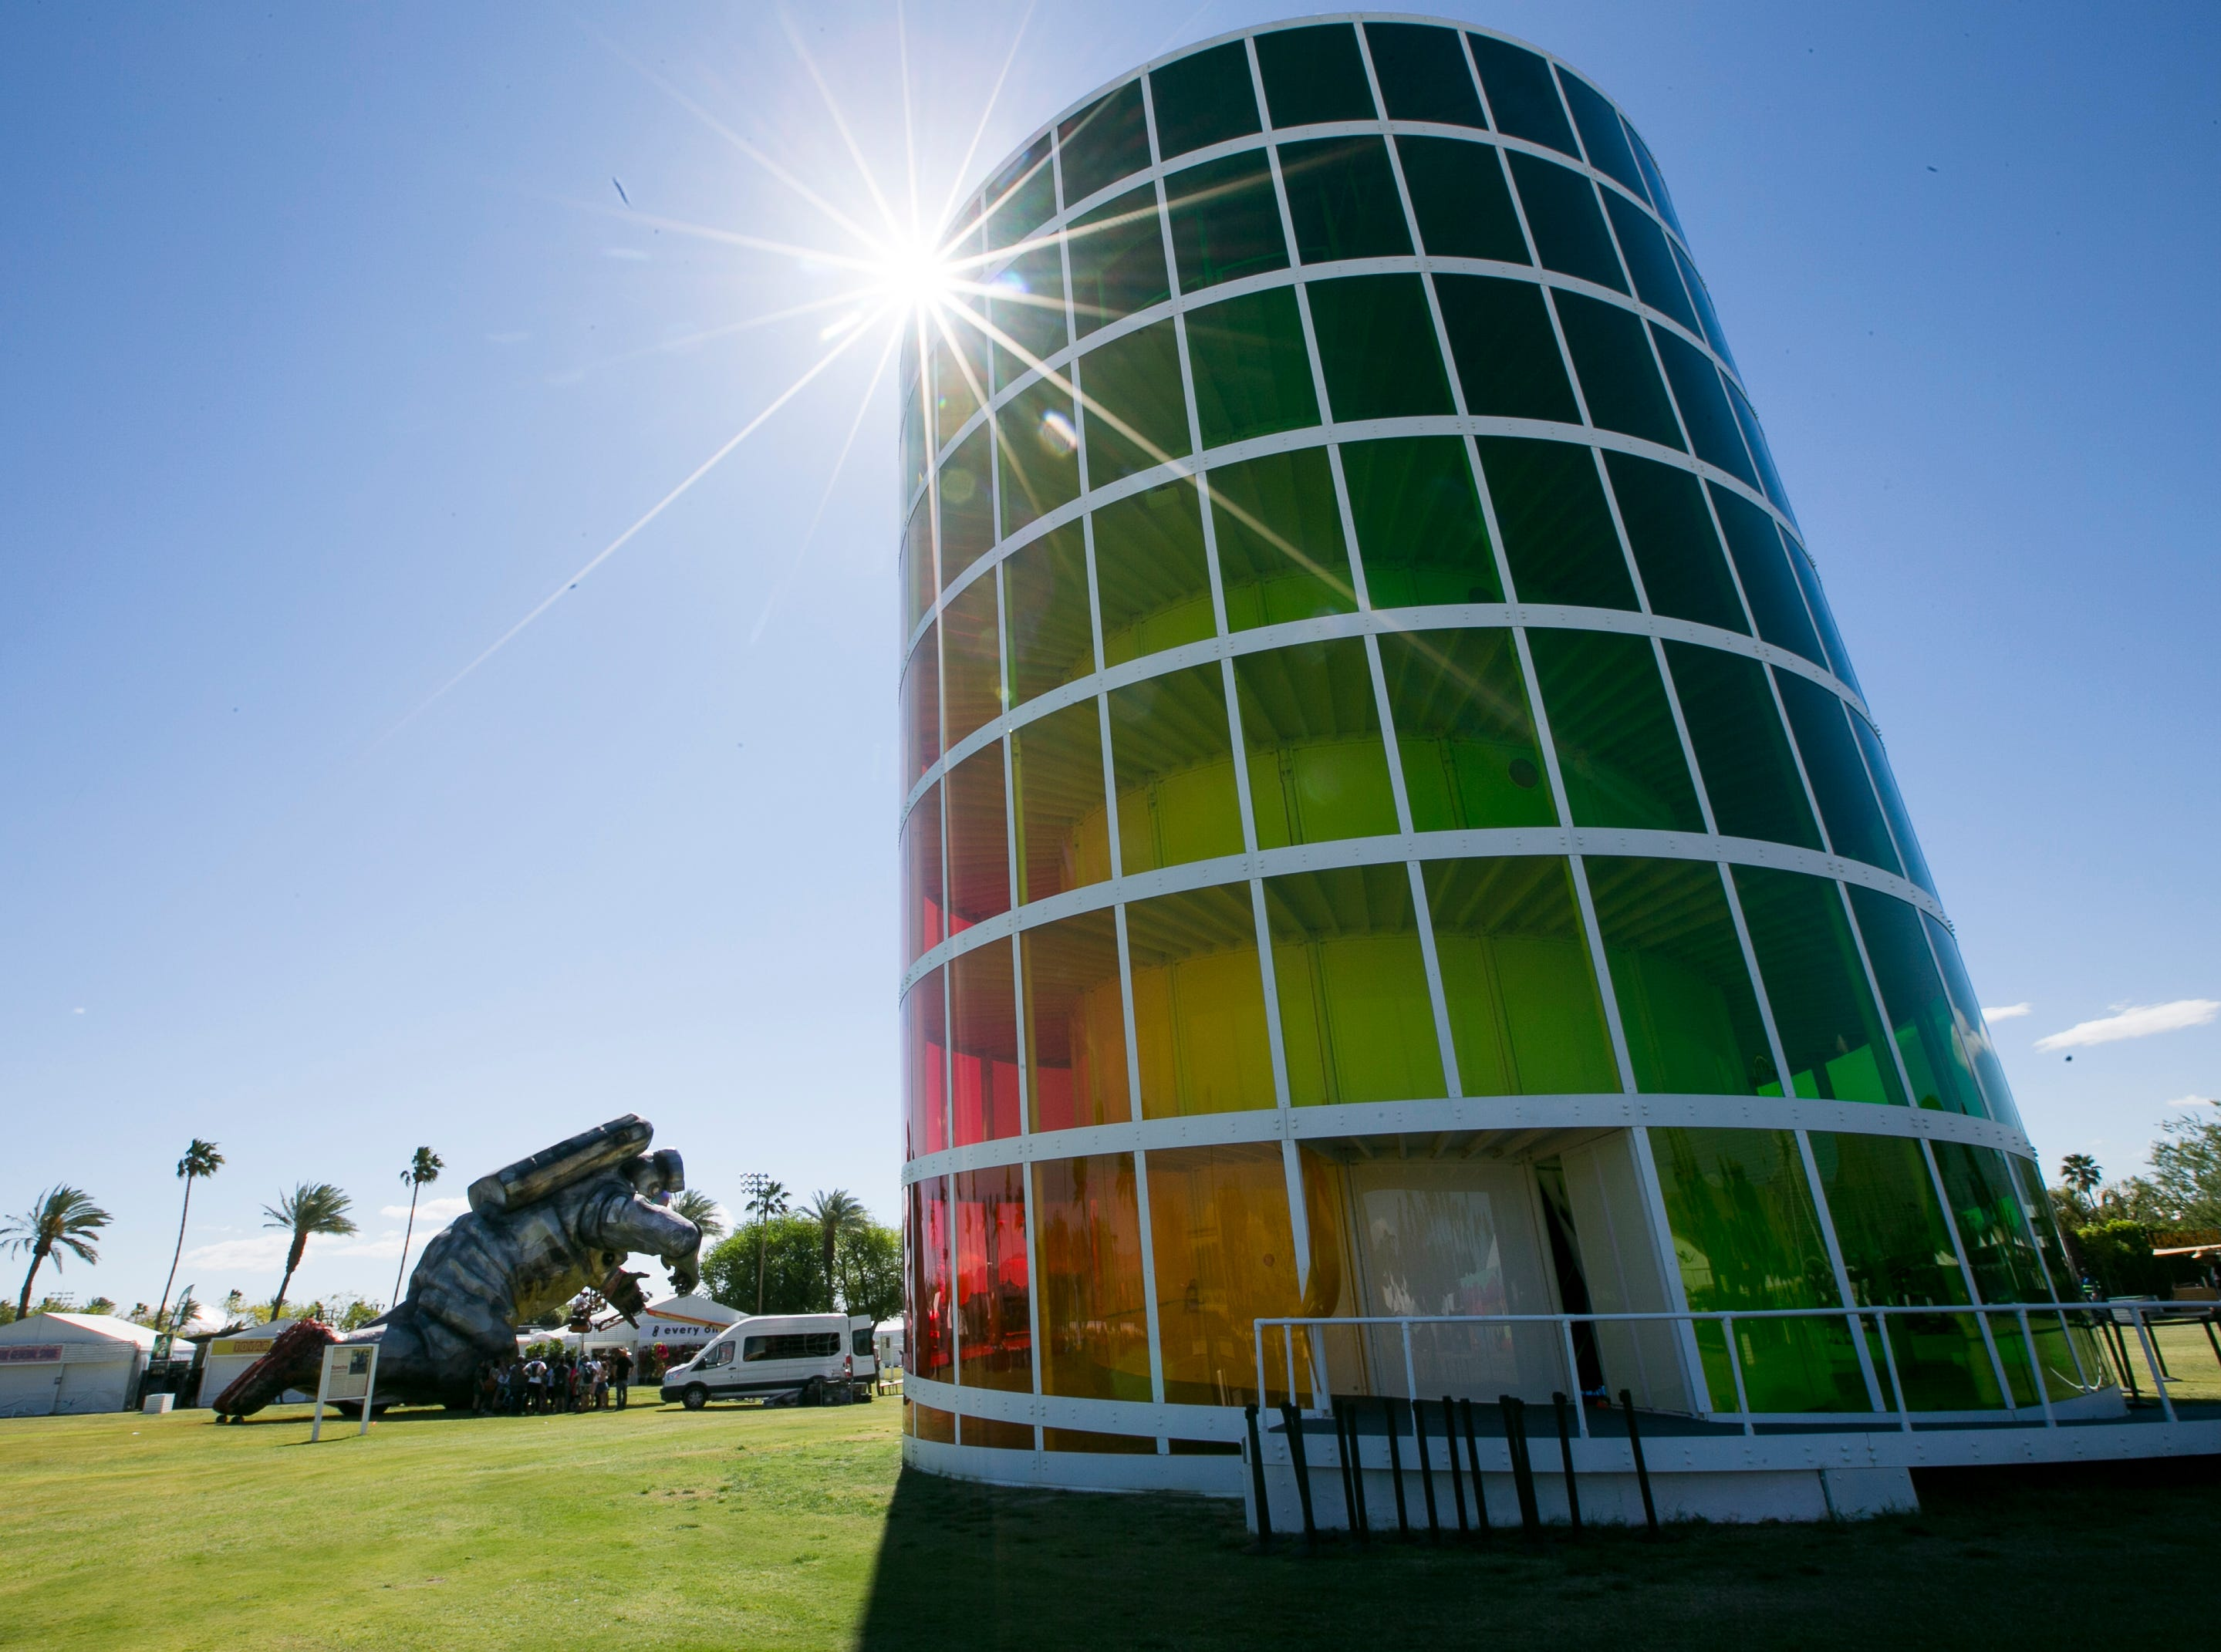 """The sun shines over art installation """"Spectra"""" by Newsubstance at the Coachella Valley Music and Arts Festival in Indio, California, on April 12, 2019."""